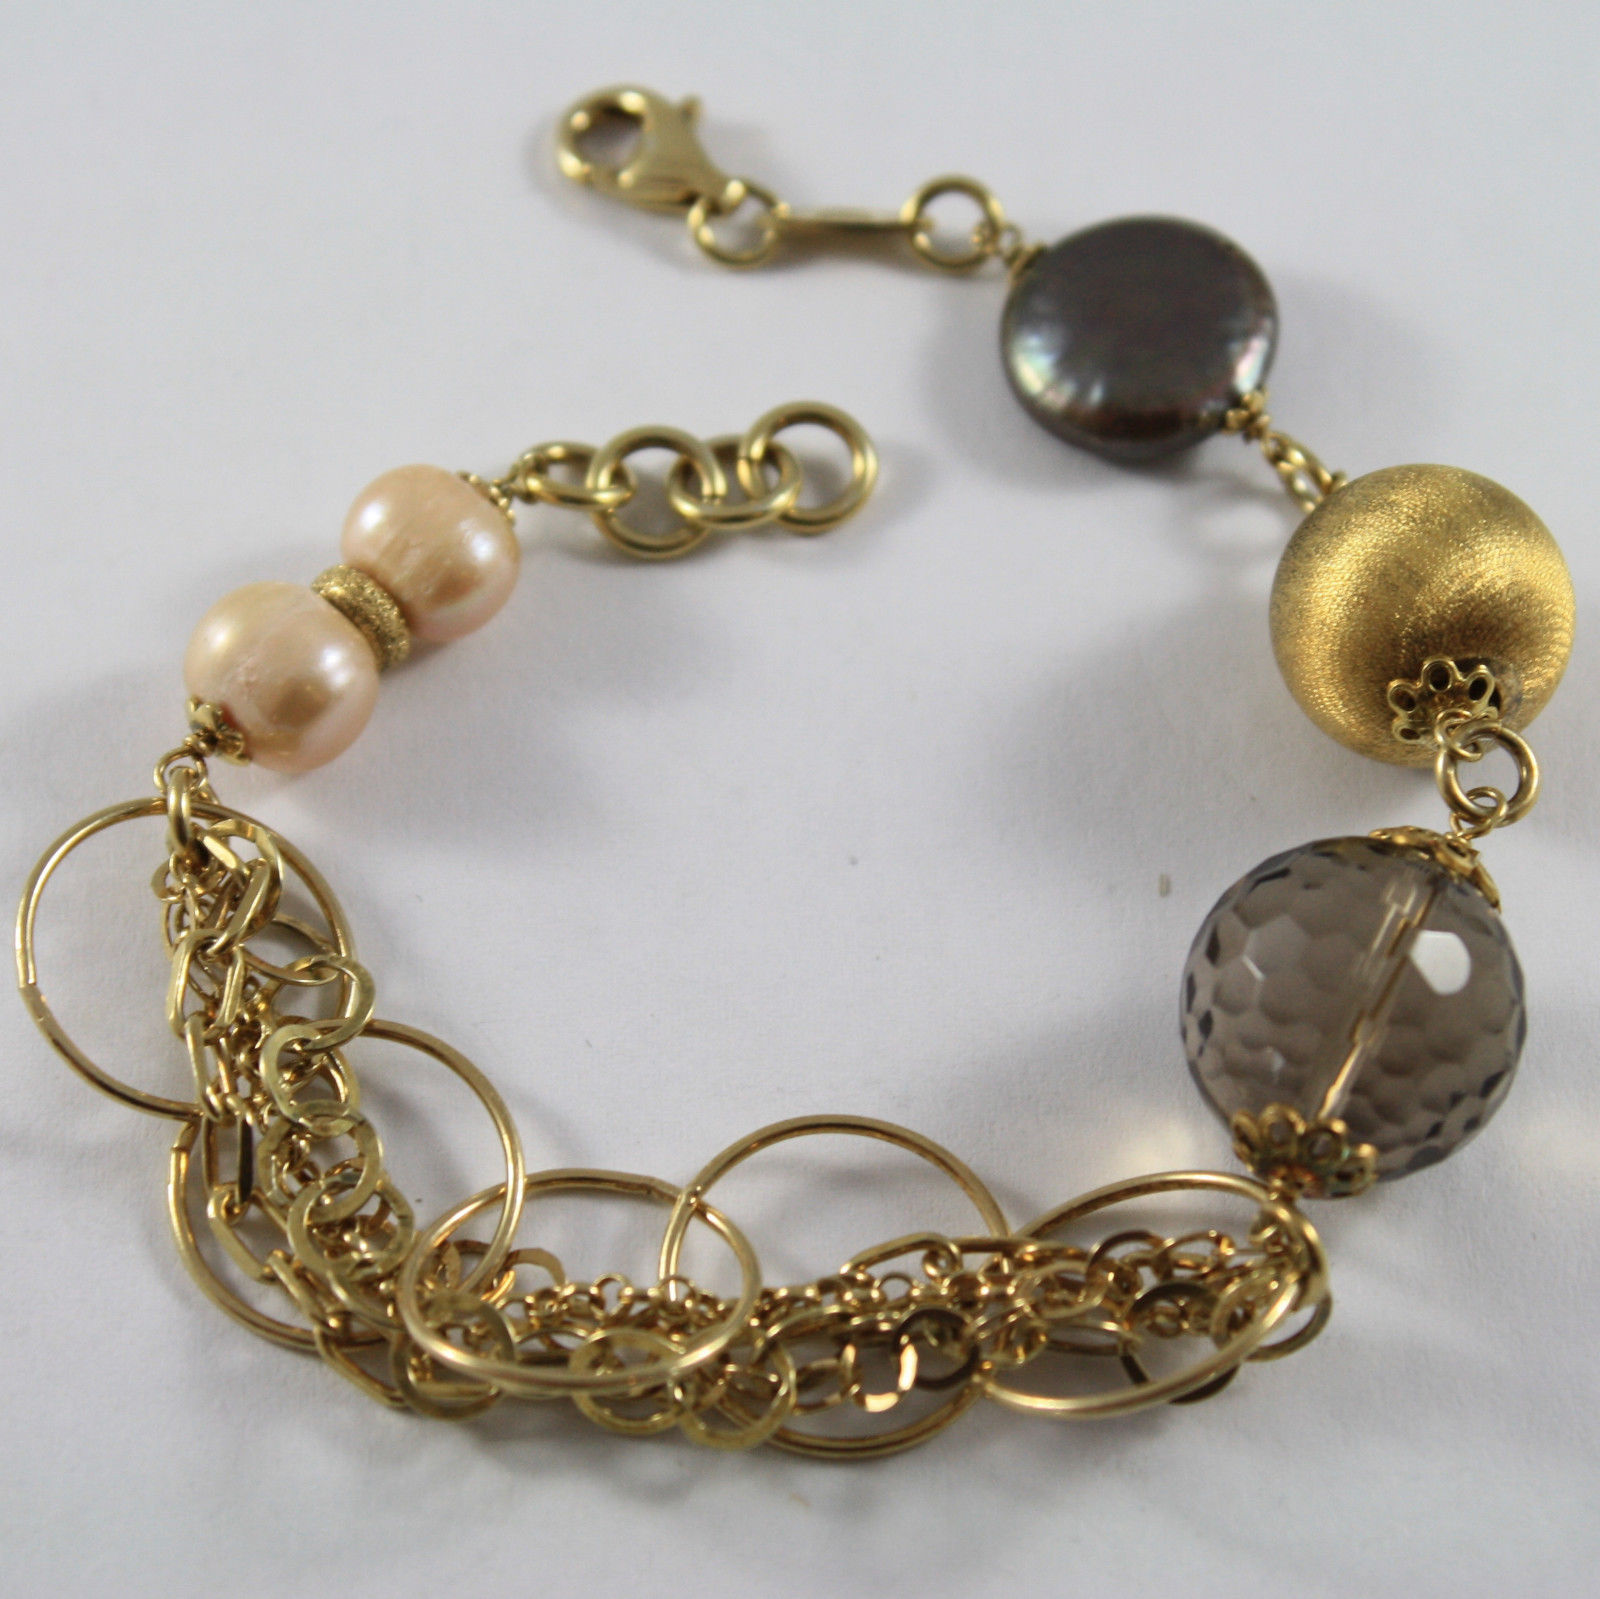 .925 RHODIUM SILVER BRACELET GOLD PLATED WITH SMOKY QUARTZ  AND ROSE PEARLS